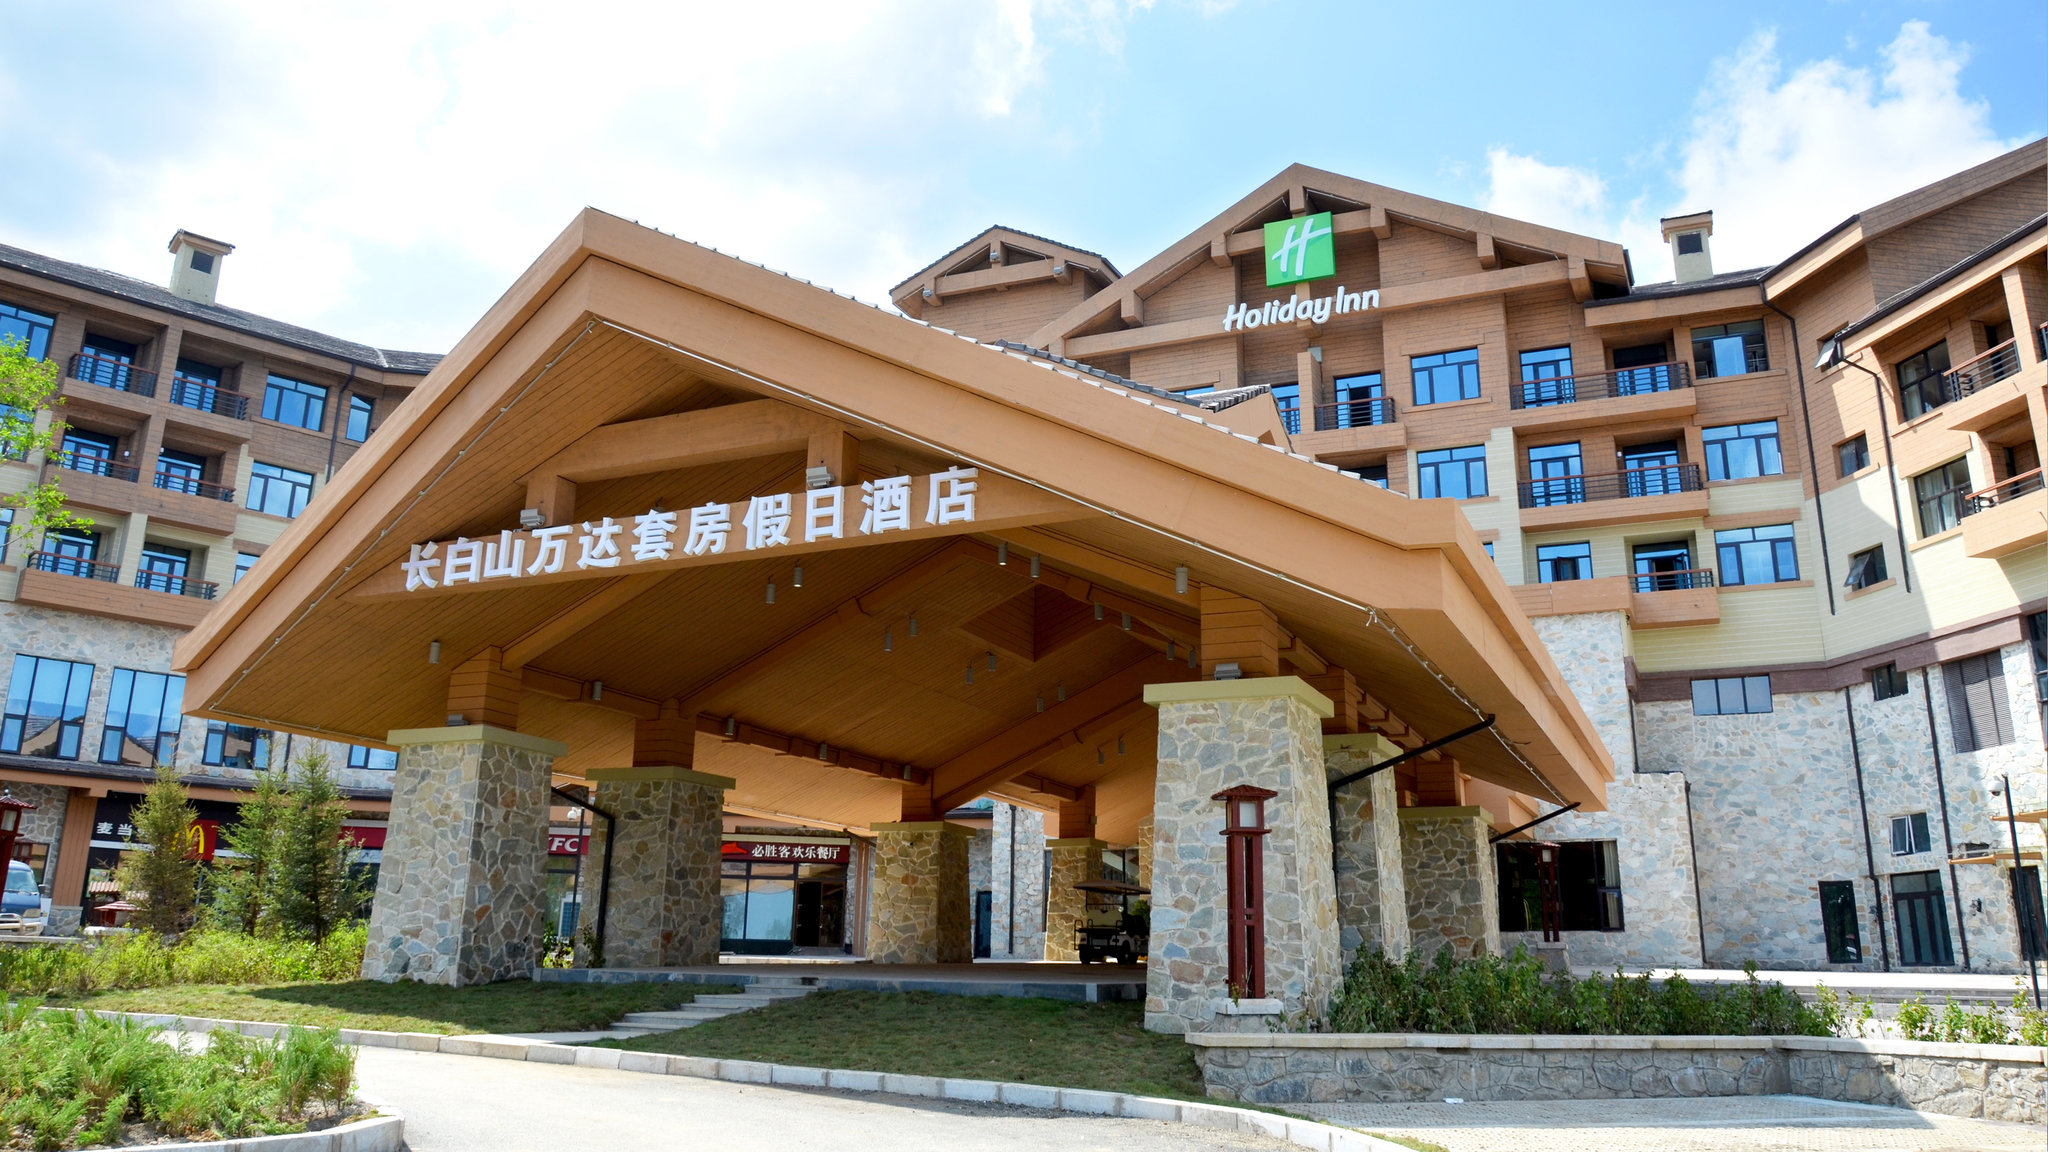 Holiday Inn Changbaishan Suites